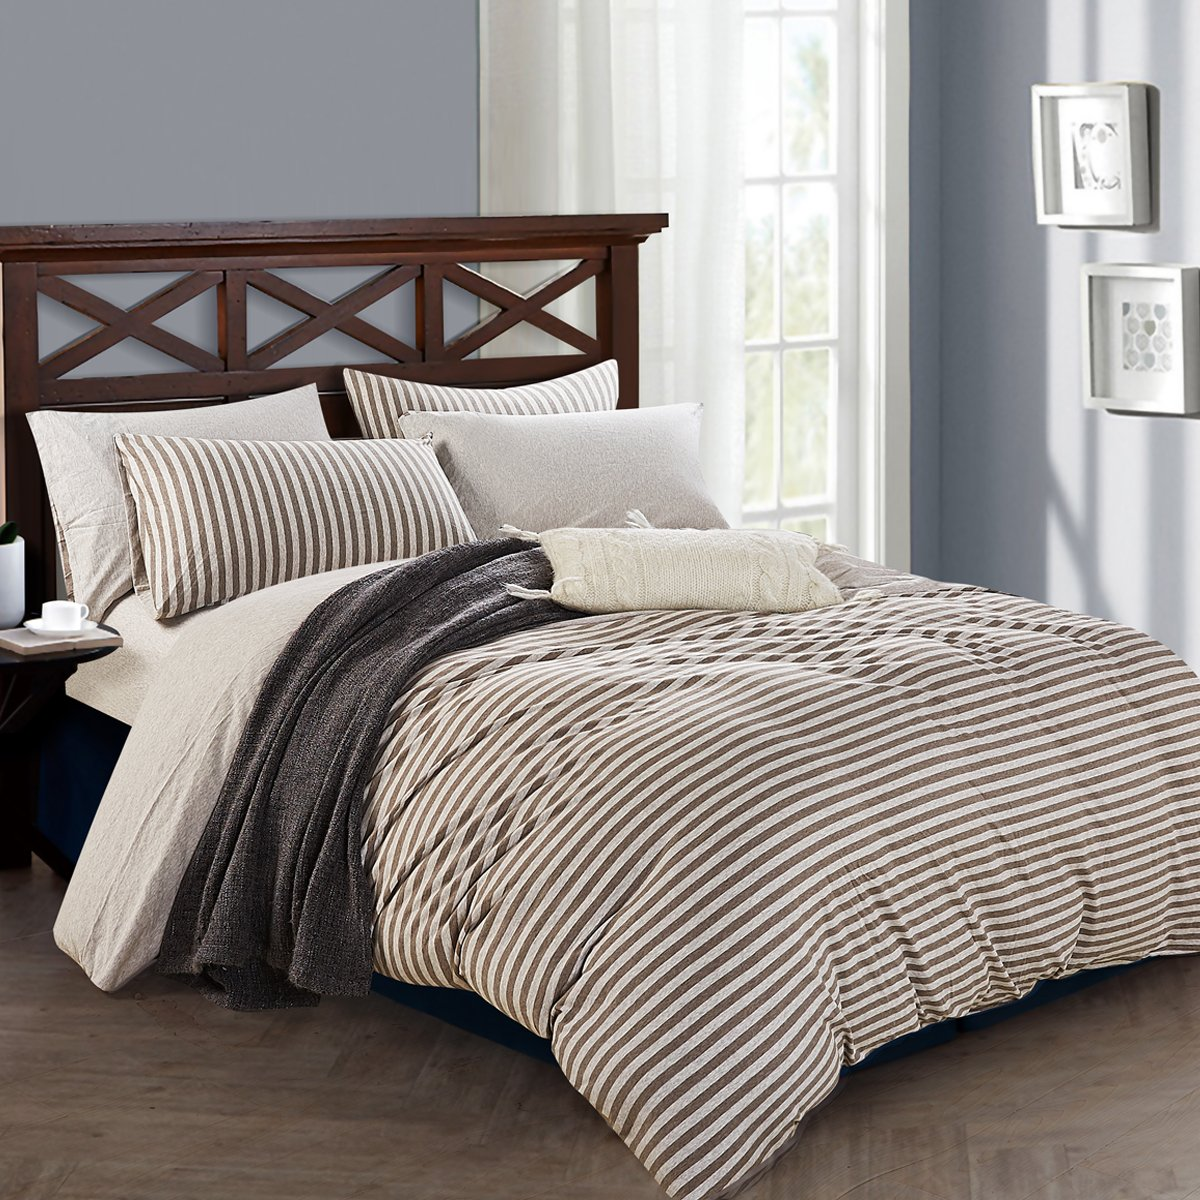 Pure Era Duvet Cover Set Ultra Soft Heather Jersey Knit